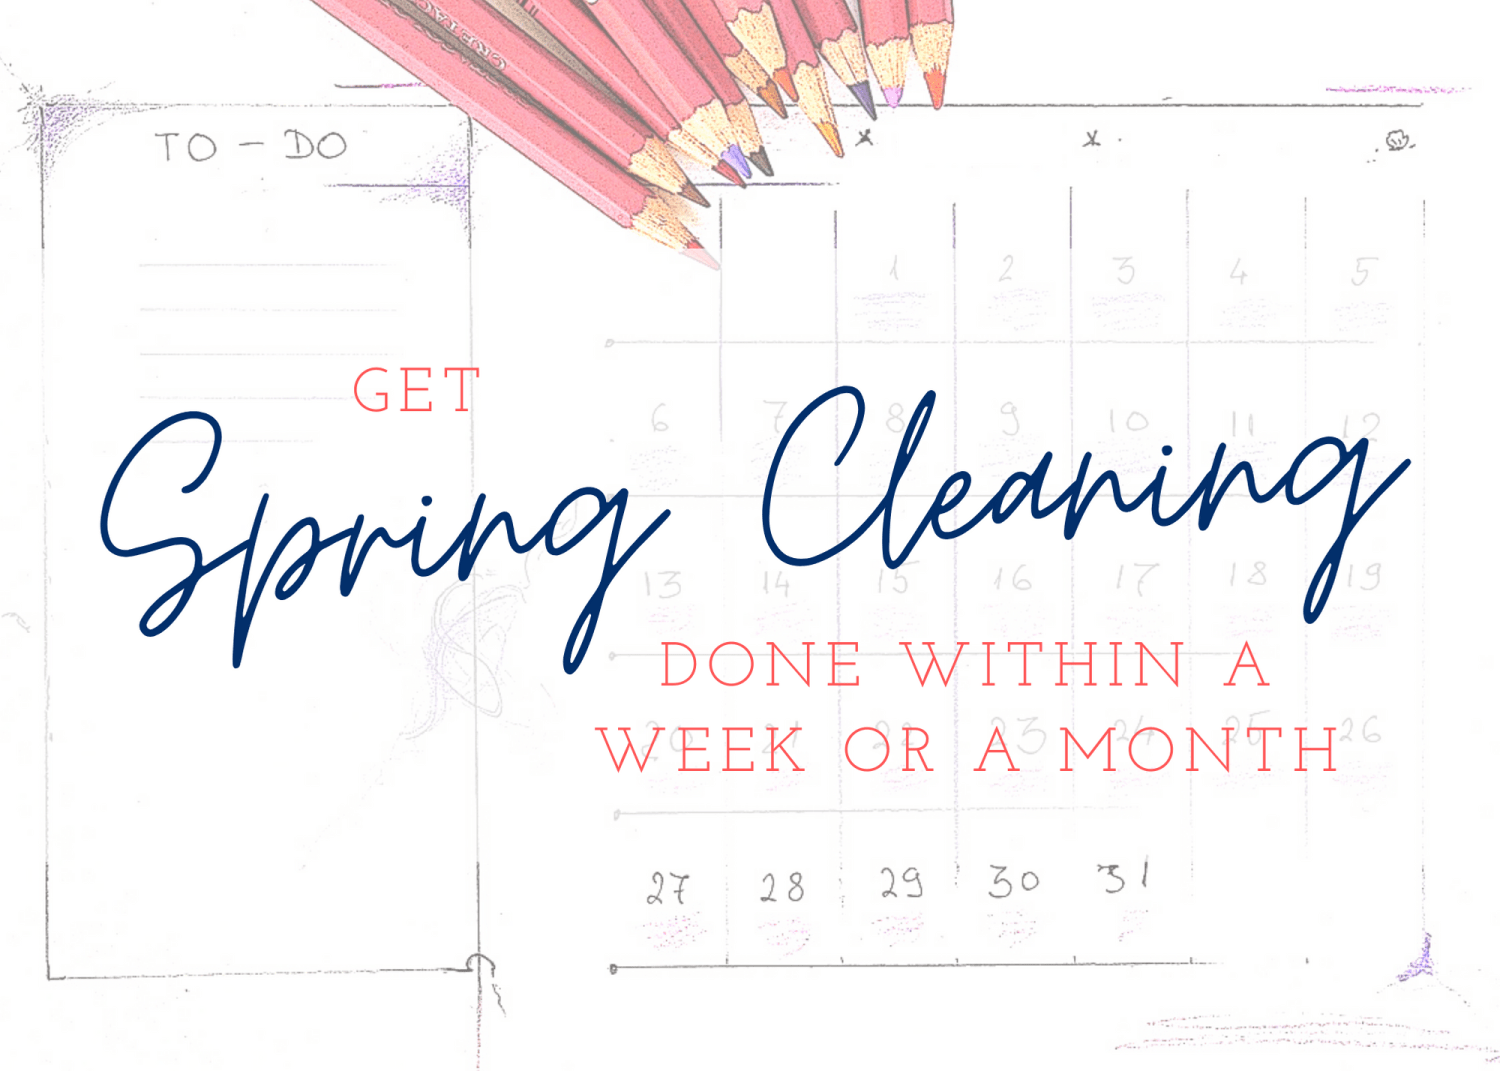 lifestyle, spring, cleaning checklists, schedule, how to spring clean, season cleaning, house cleaning, spring cleaning, window cleaning, cleaning service, spring break, checklists for cleaning, spring cleaning tips, clean by task, clean by room, refresh, home organization, how to, cleanout, wiping, new, getting things done, diy, do it yourself, housekeeping, know how, tips, notes, free printables, pdf format, printable checklist, home decor, nesting, clean, bedrooms, bathrooms, kitchen, dining, living room, play room, garage, windows, baseboards, fans, flooring, closets, furniture, out with the old, in with the new, clean in a week, a month, monthly schedule, weekly schedule, little conquest